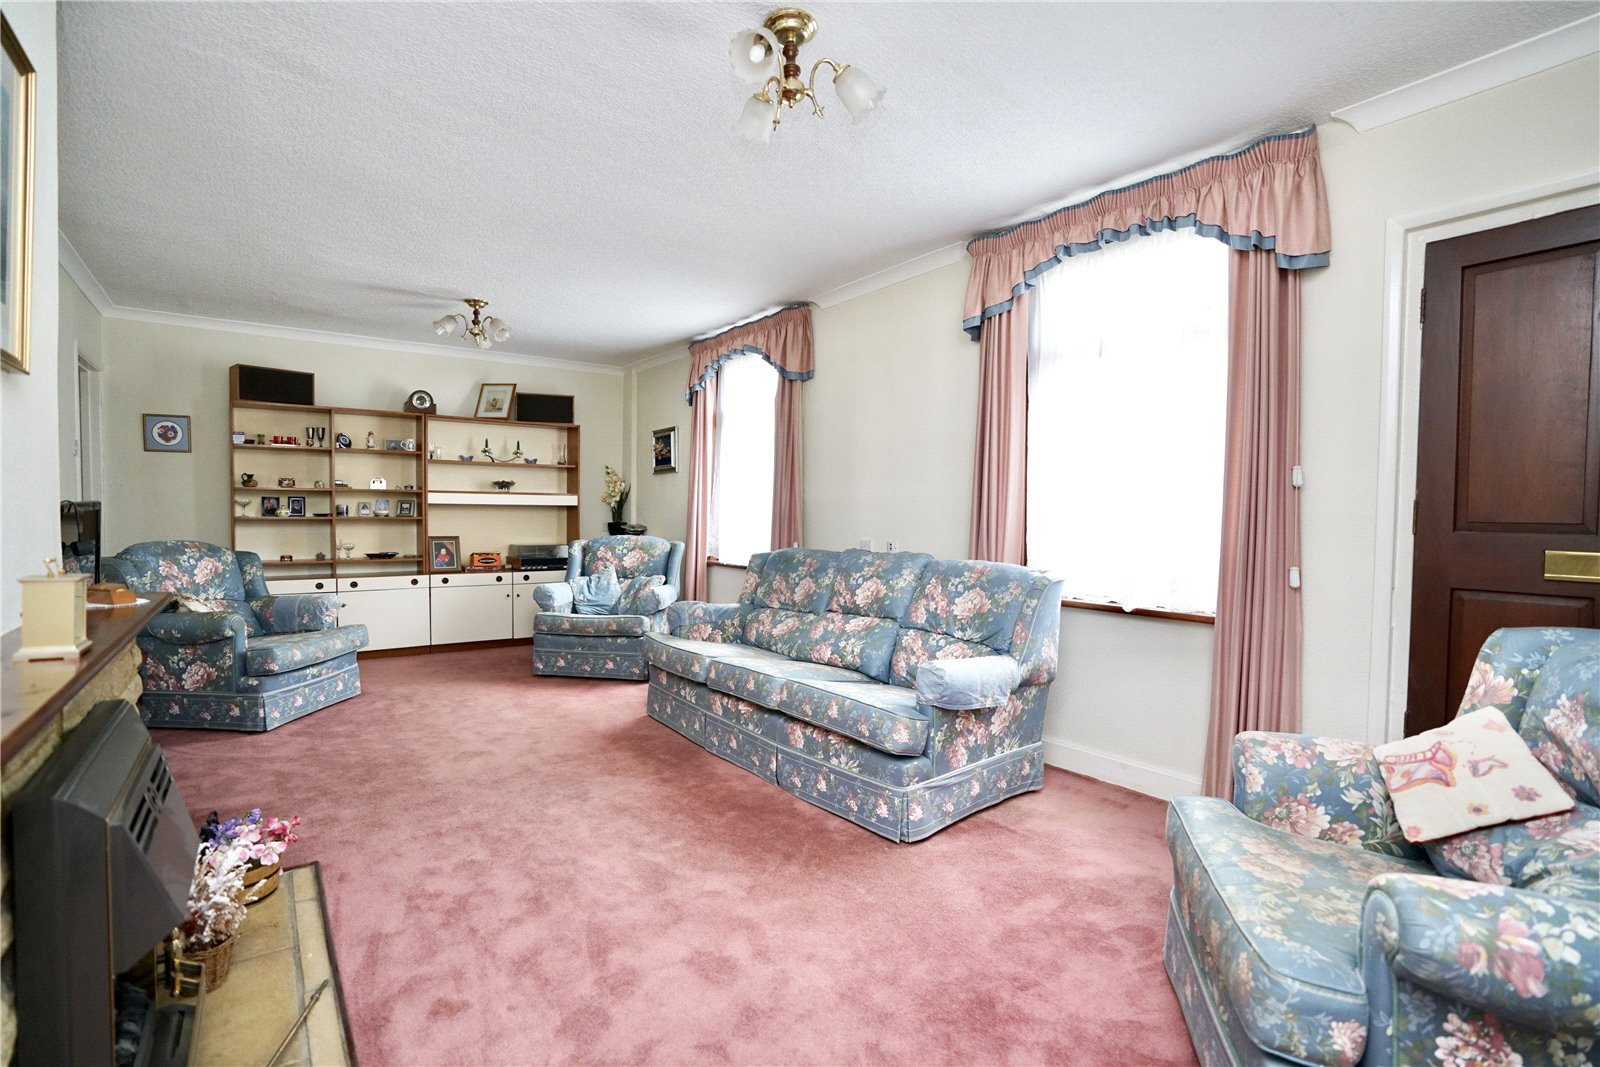 3 bed house for sale in Great North Road, Eaton Socon 9